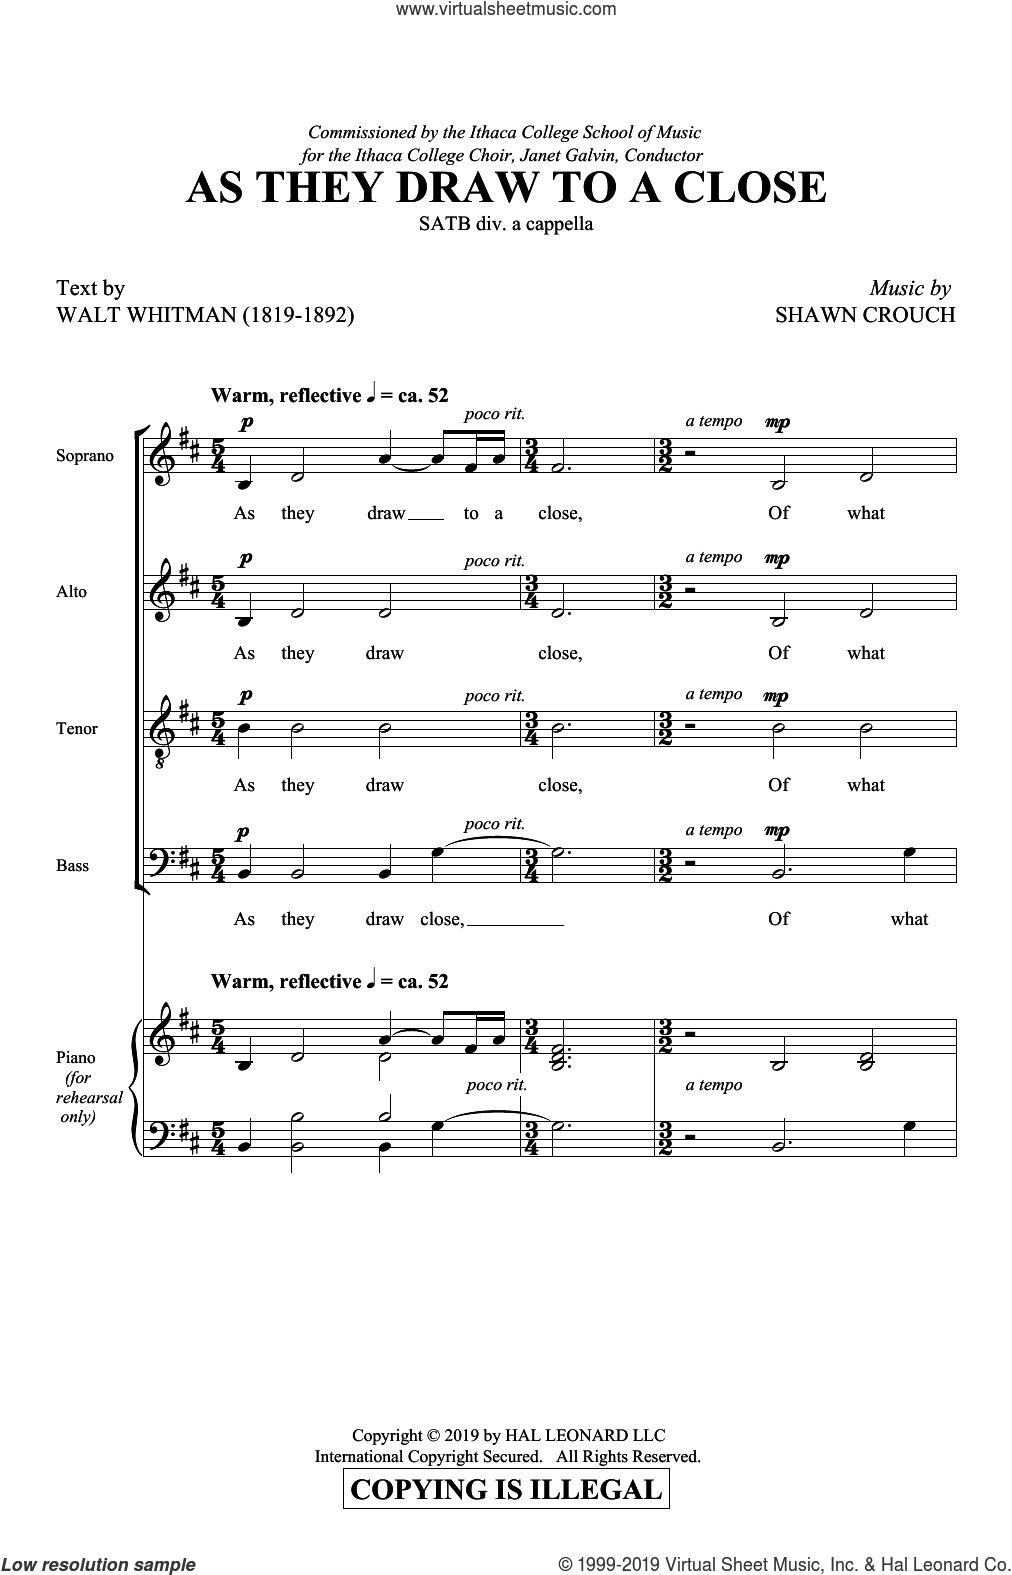 As They Draw To A Close sheet music for choir (SATB: soprano, alto, tenor, bass) by Shawn Crouch and Walt Whitman, intermediate skill level